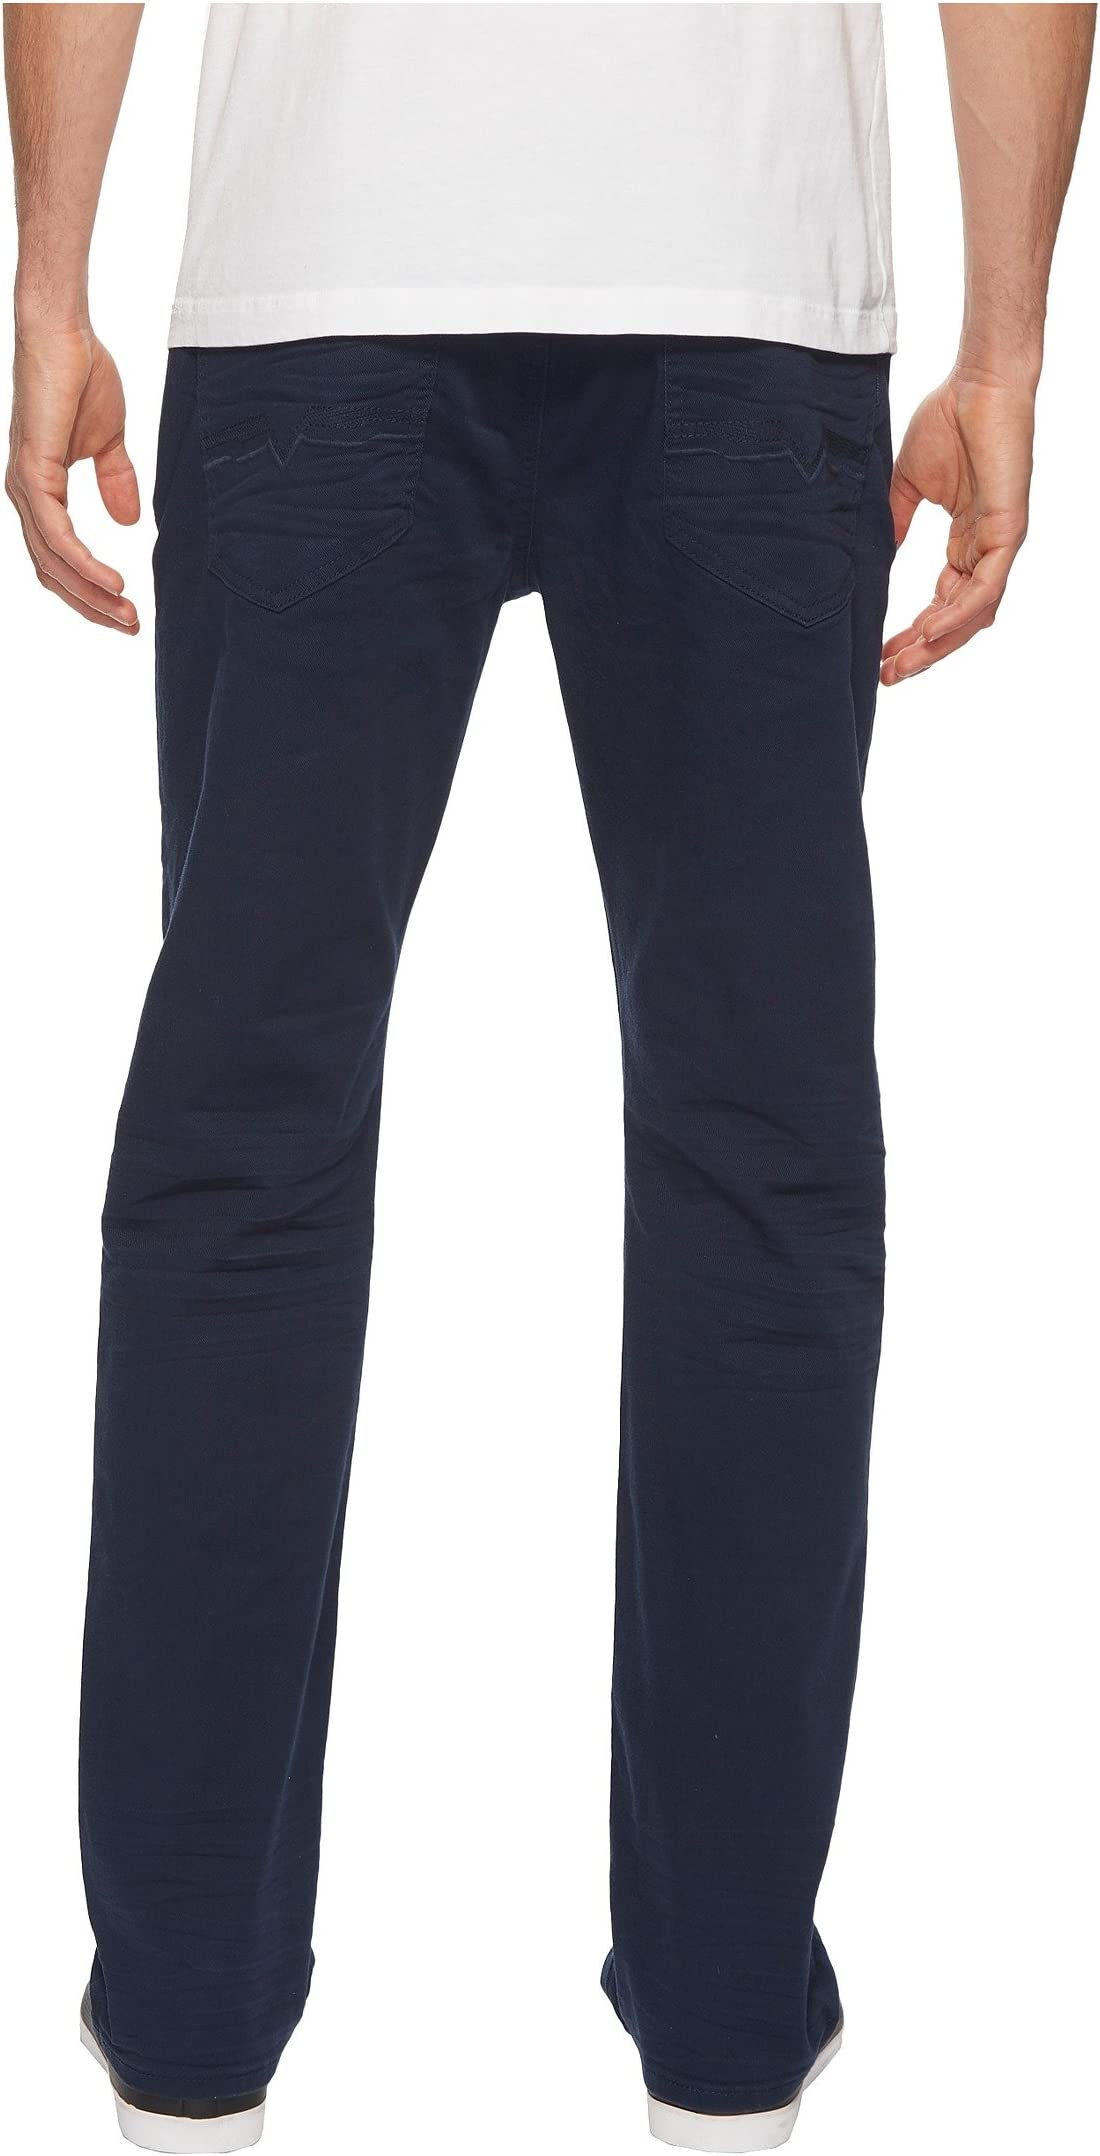 Buffalo David Bitton Six-X Straight Fit Jeans Torpedo Fabric in Deep Navy kr4bY